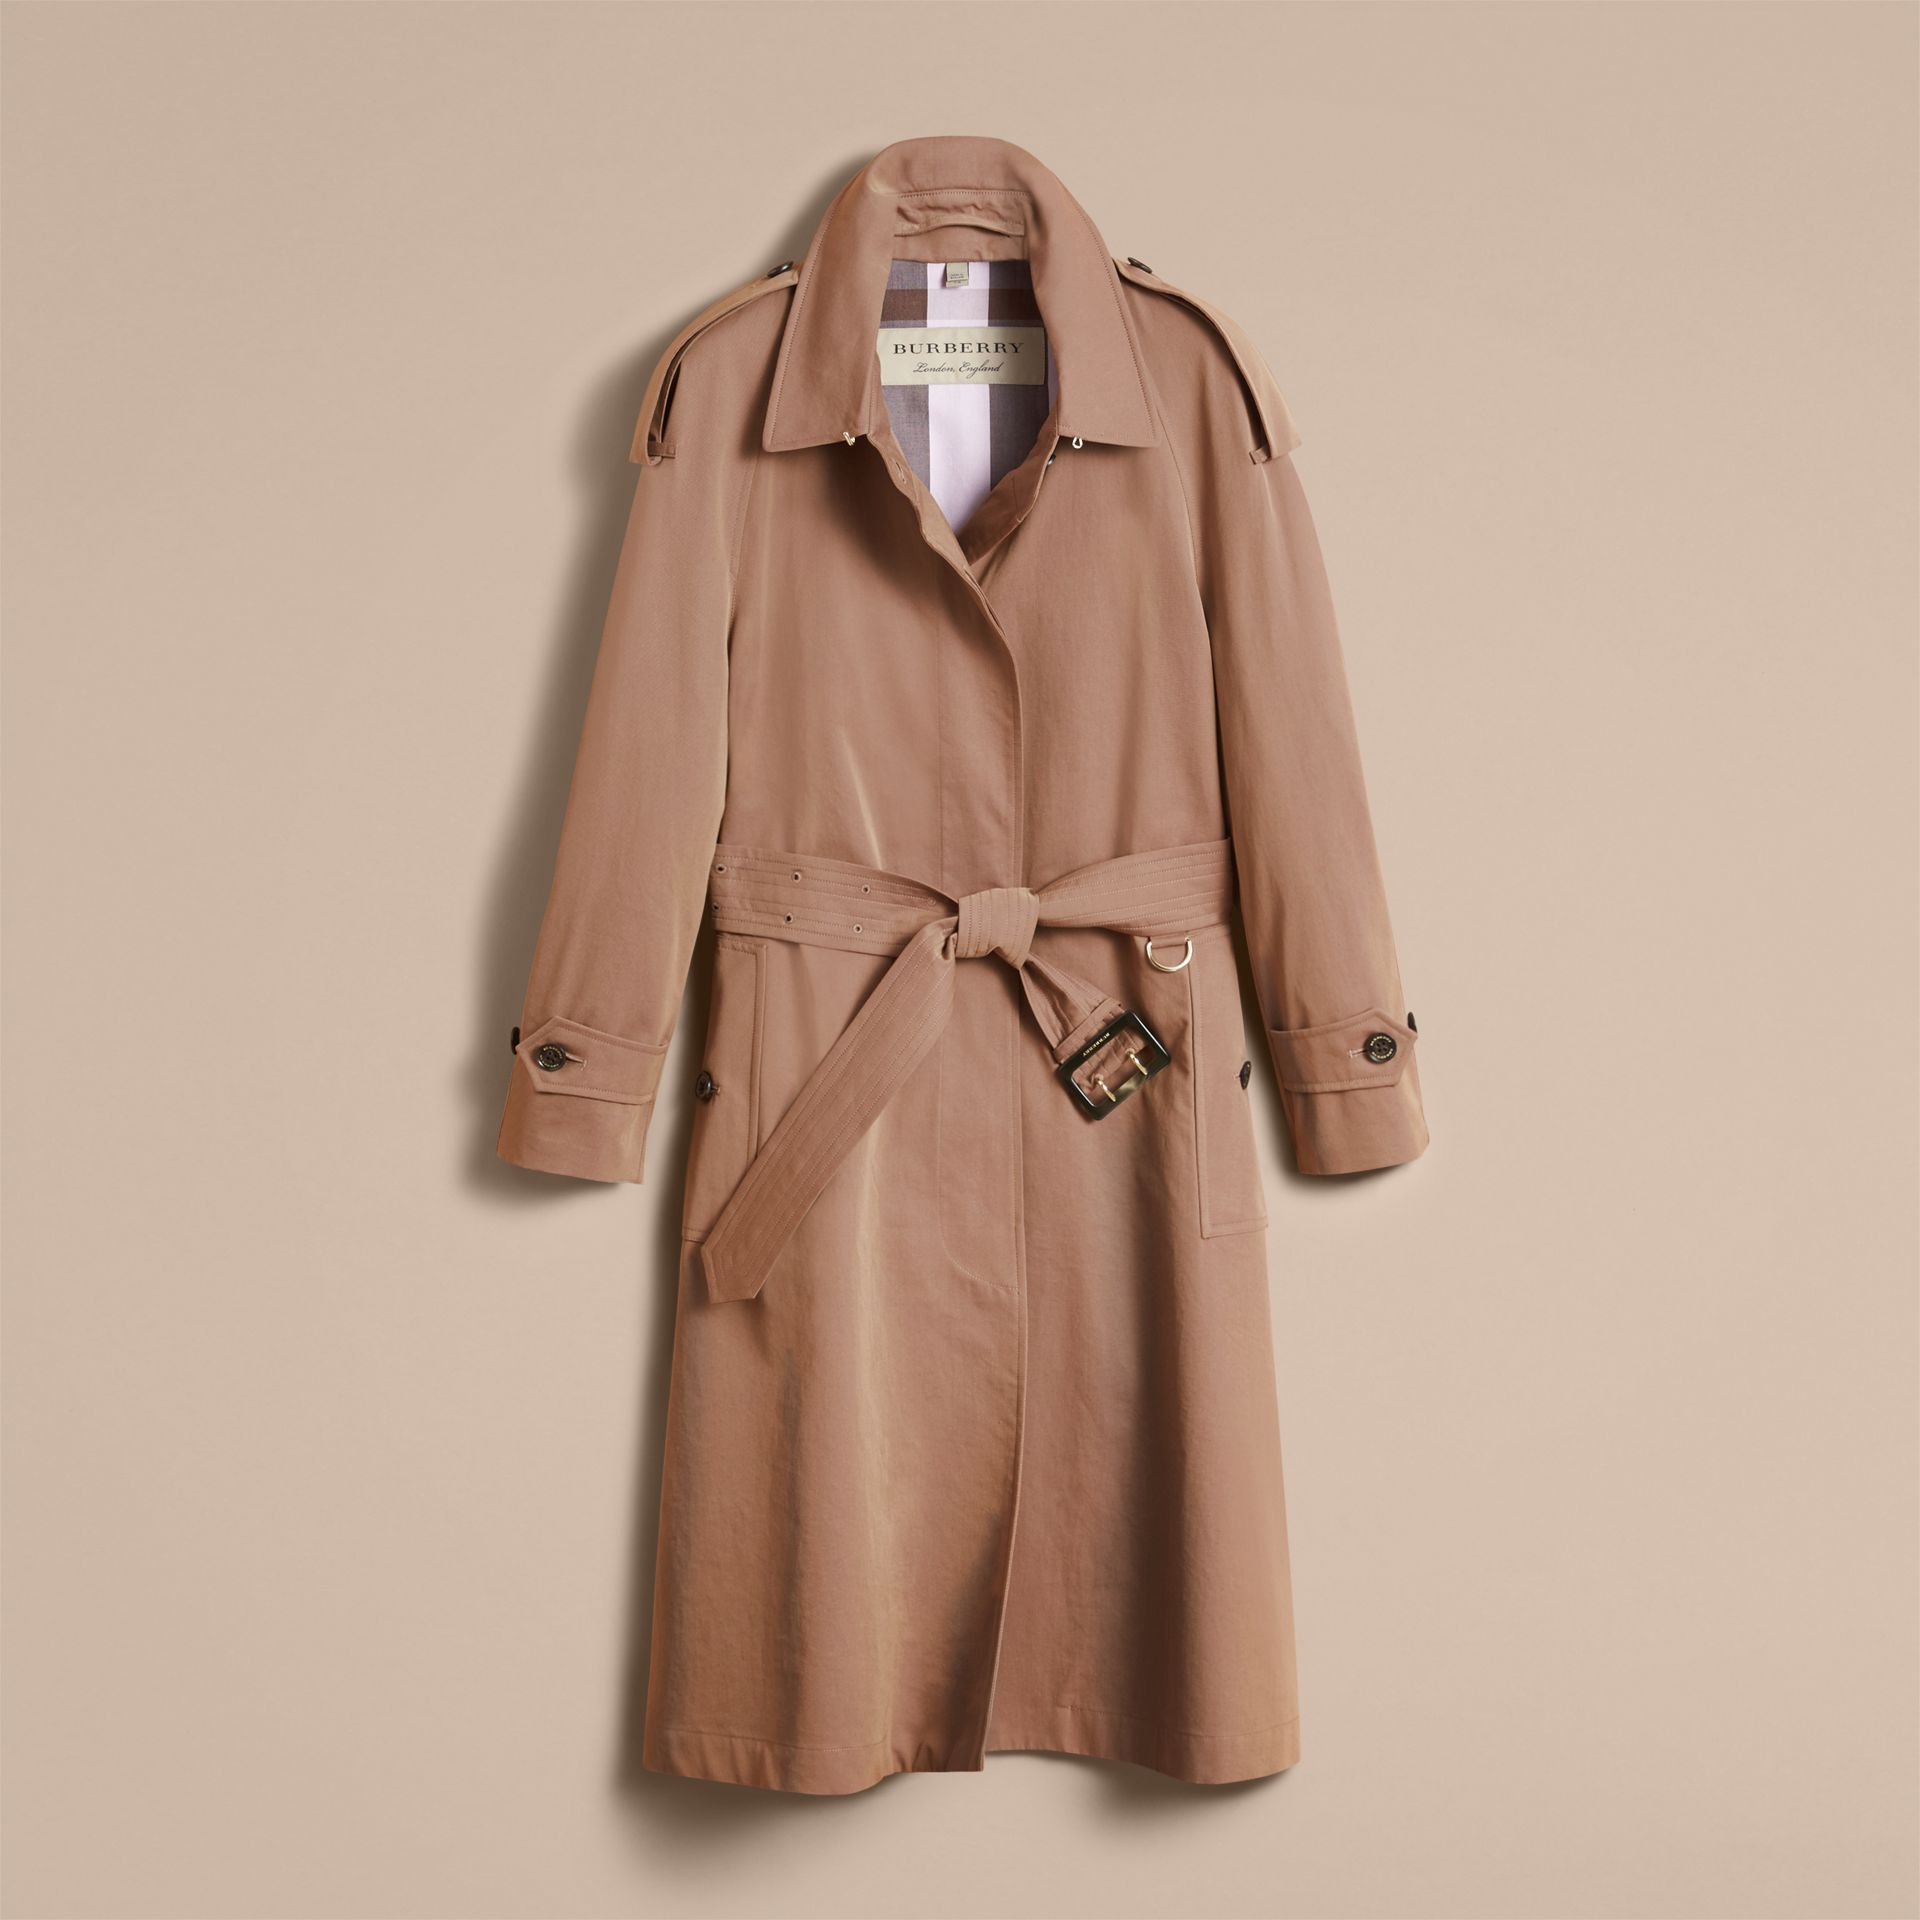 Tropical Gabardine Trench Coat in Taupe - Women | Burberry Canada - gallery image 4